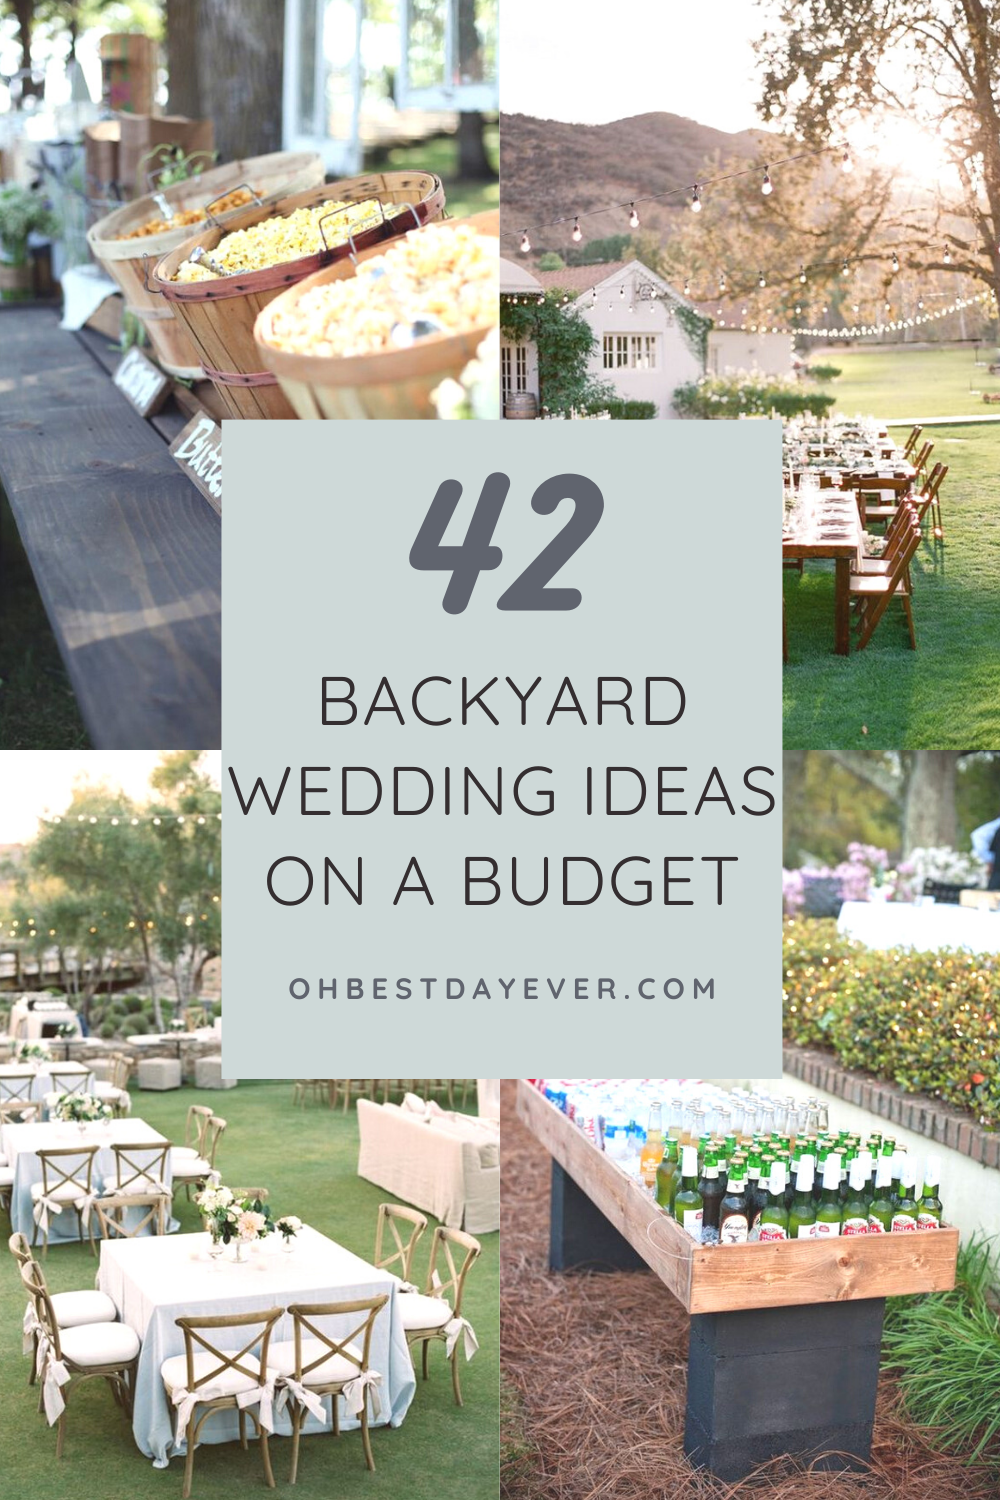 42 BACKYARD WEDDING IDEAS ON A BUDGET FOR 2021